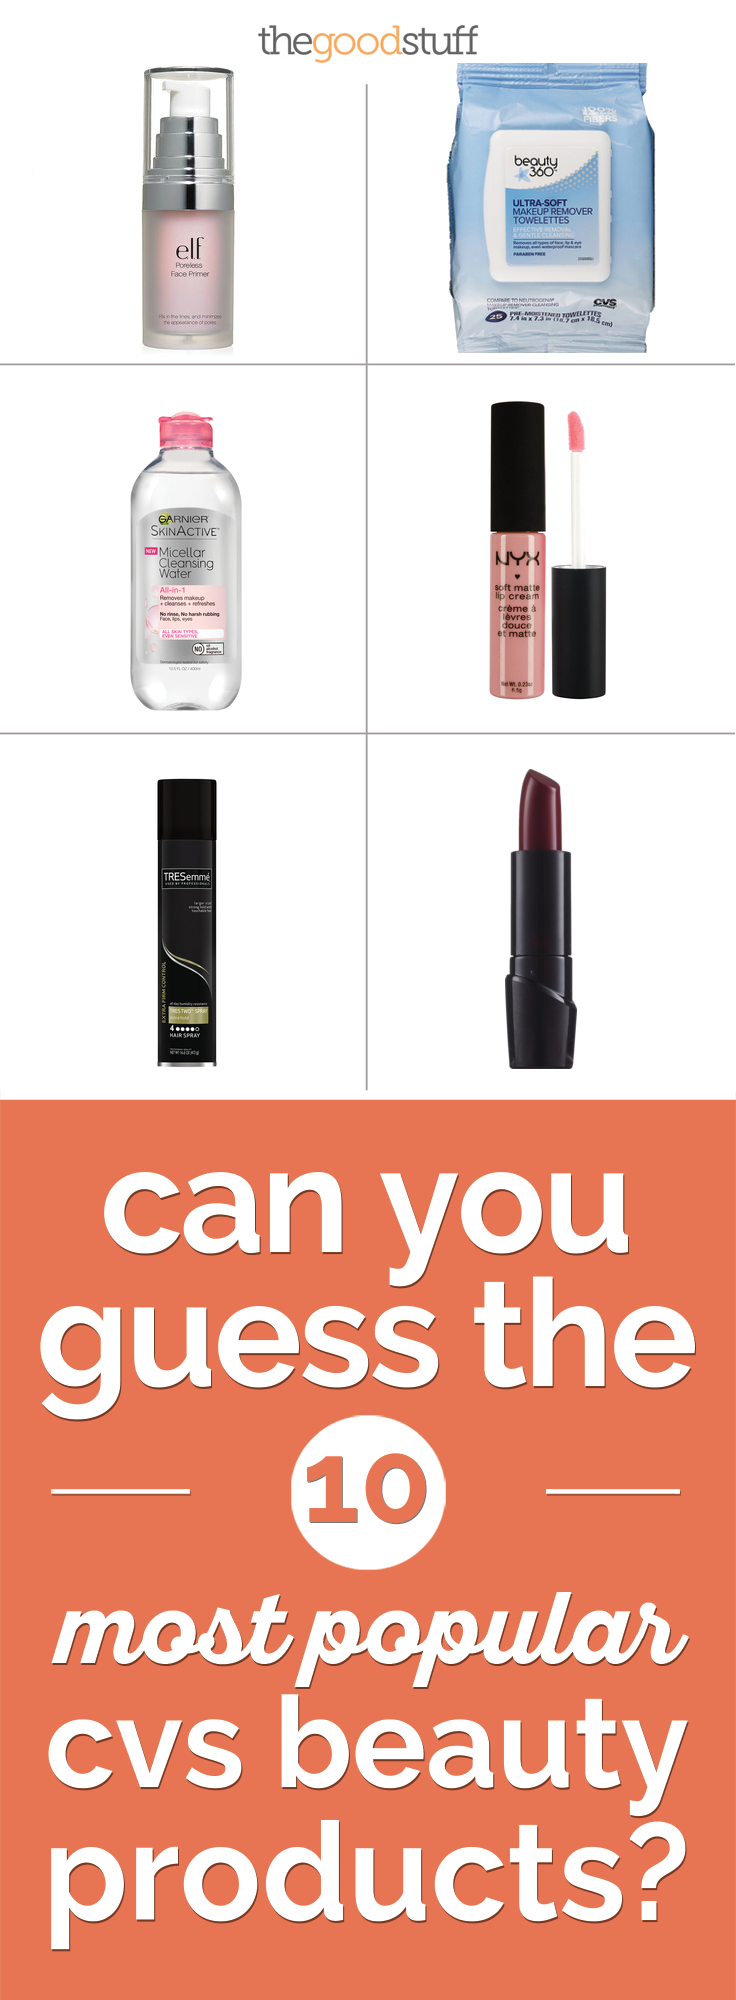 Can You Guess the 10 Most Popular CVS Beauty Products? | thegoodstuff